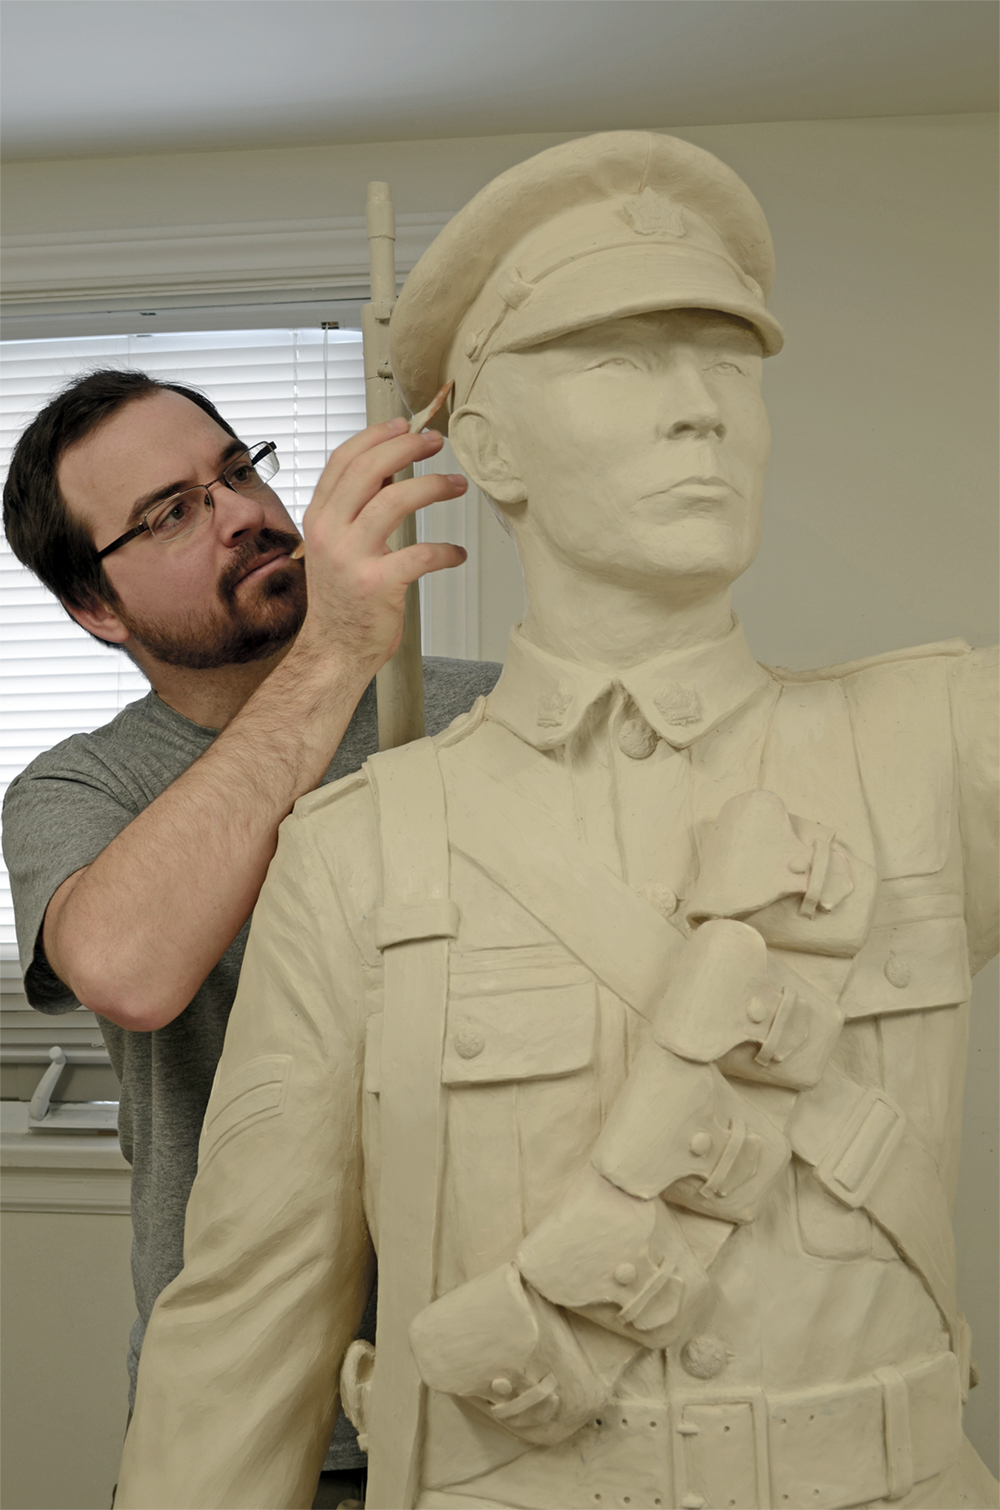 A bearded male sculptor uses a carving tool while he works on a statue of a First World War soldier in a uniform of the time period.